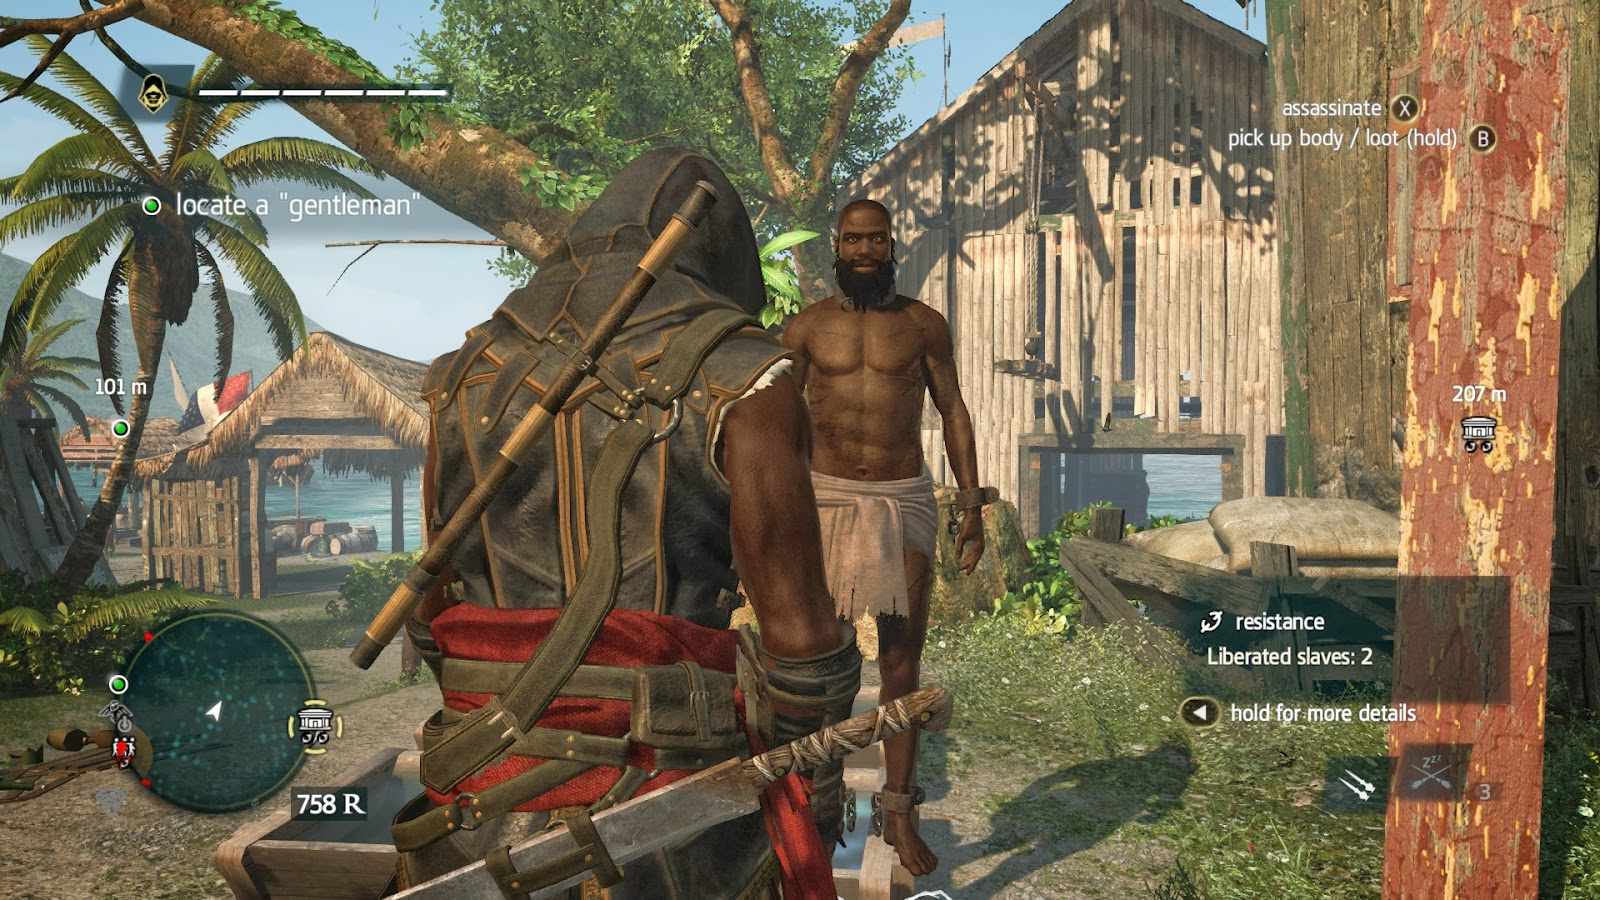 Assassin's Creed 4: Black Flag includes missions to free captive slaves, but treats them as objectives and resources.